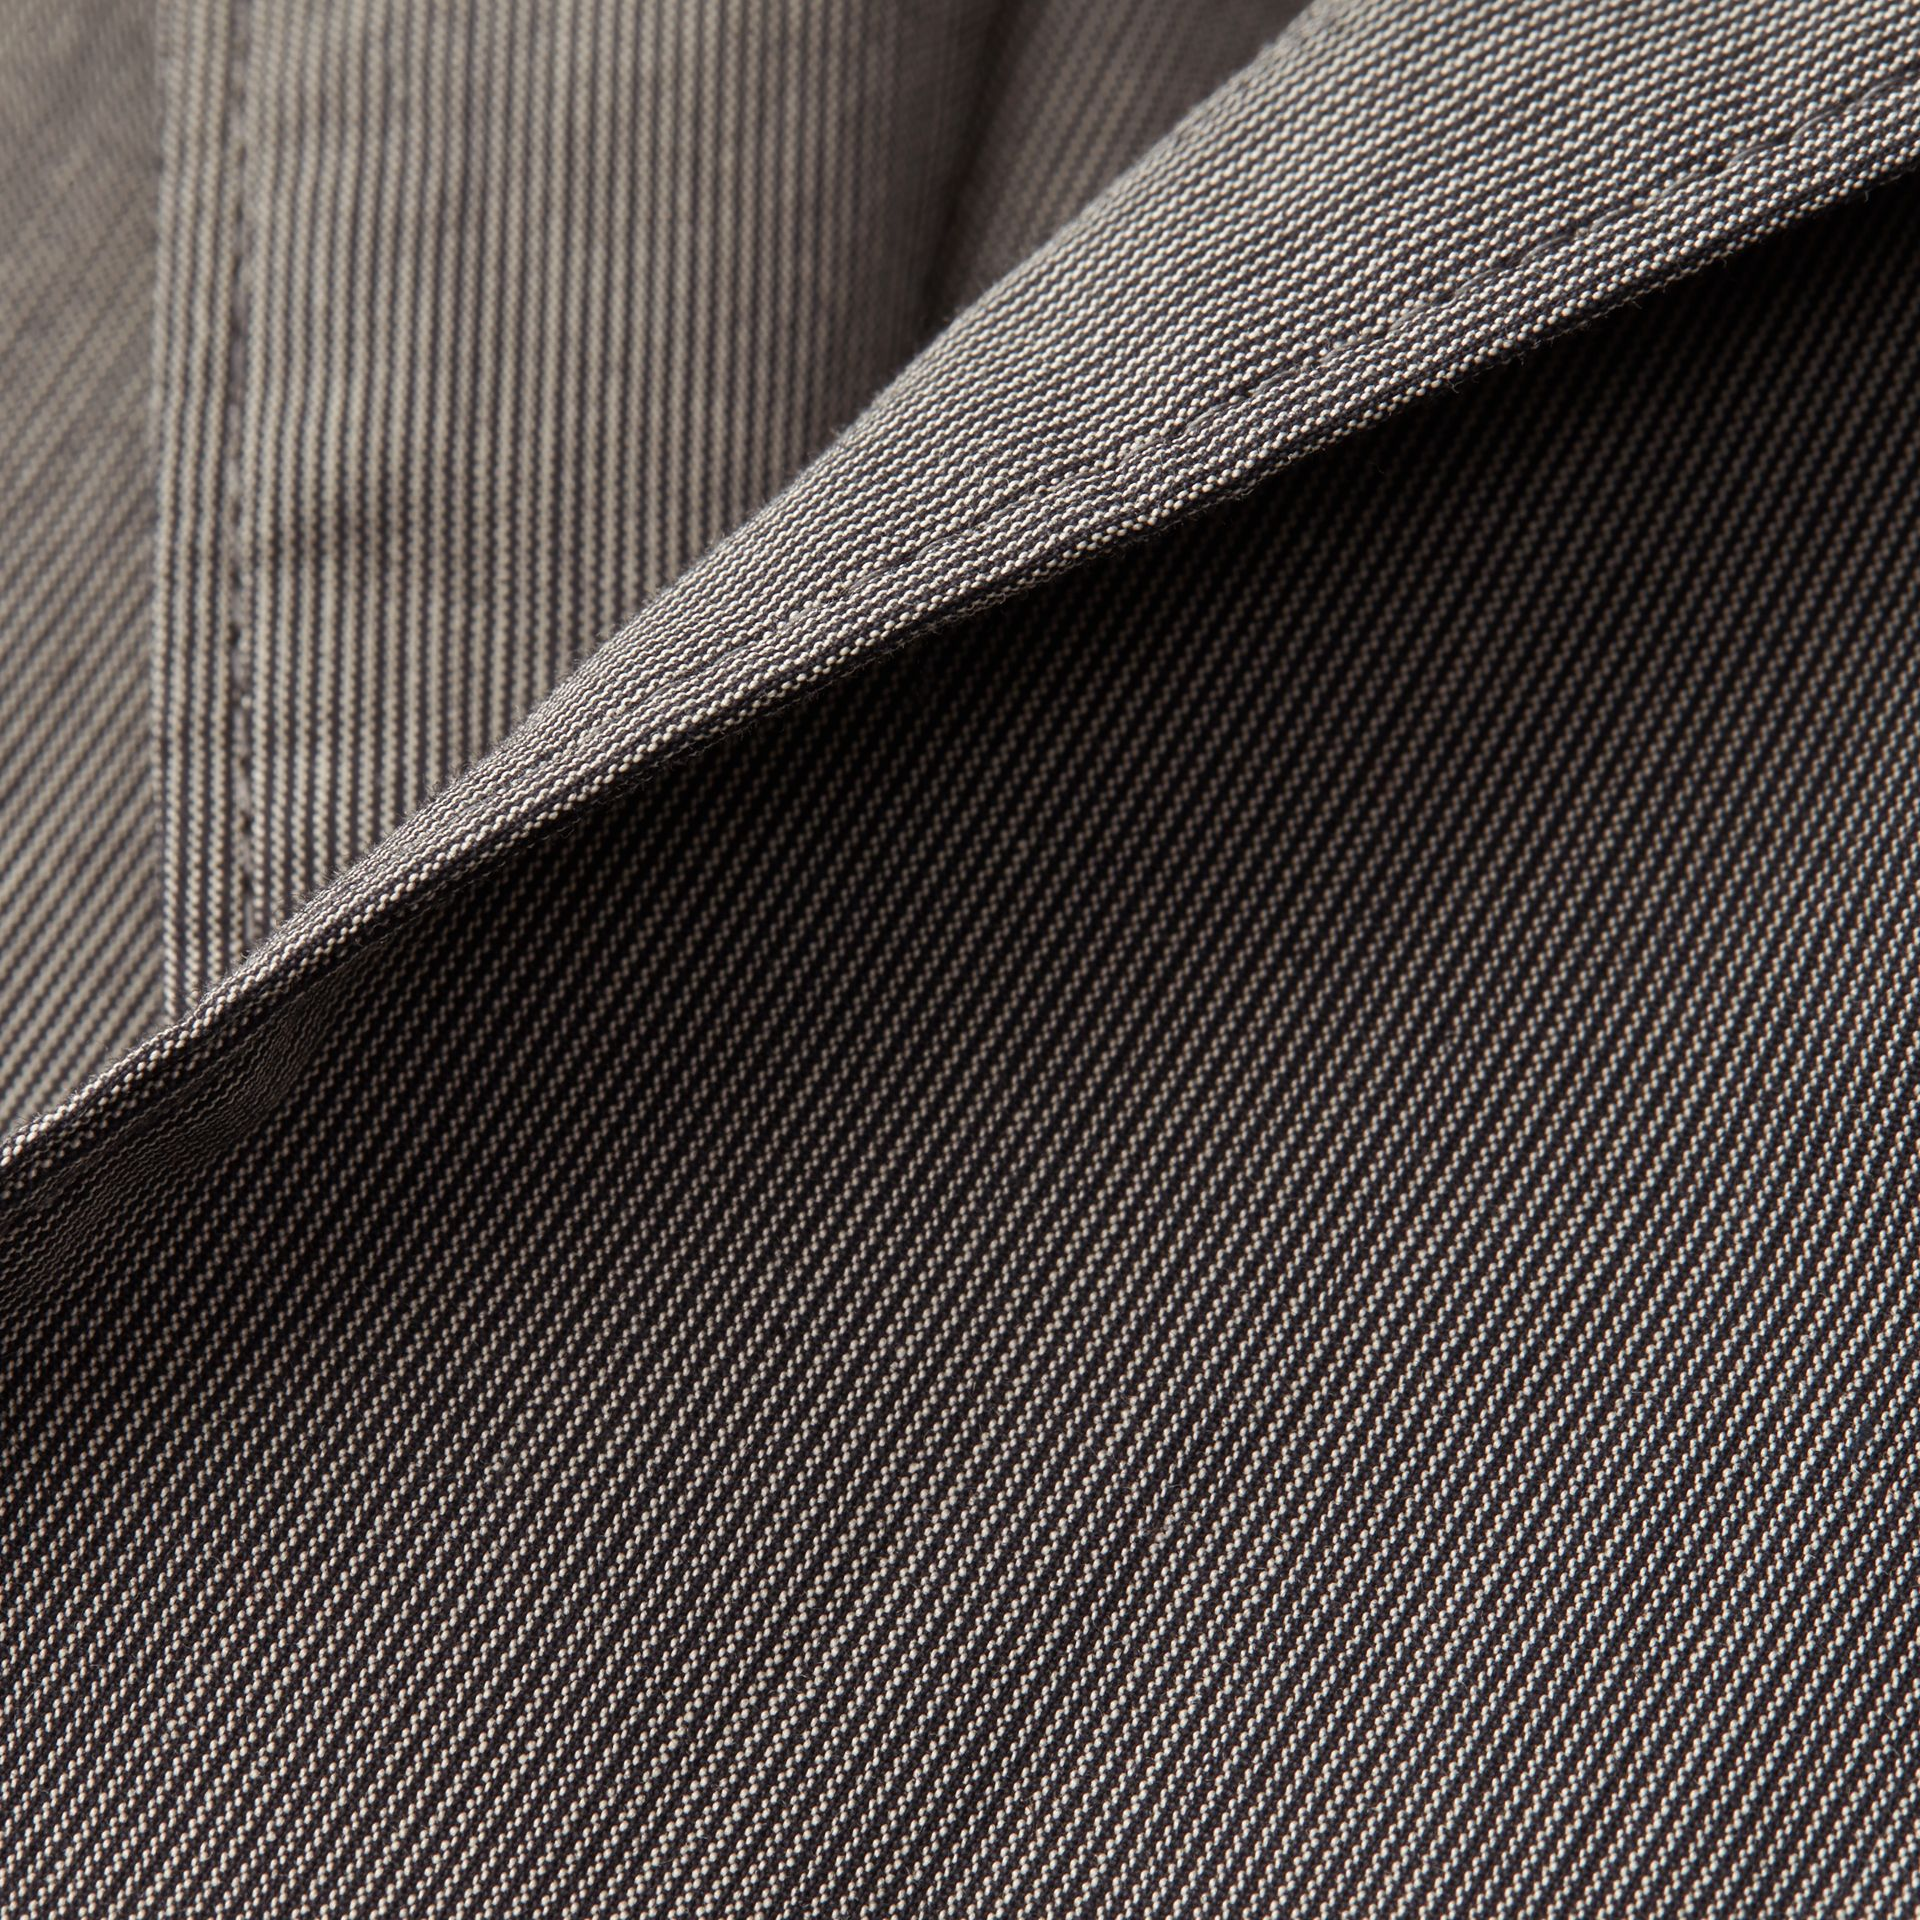 Dark grey Cotton Tailored Jacket - gallery image 2